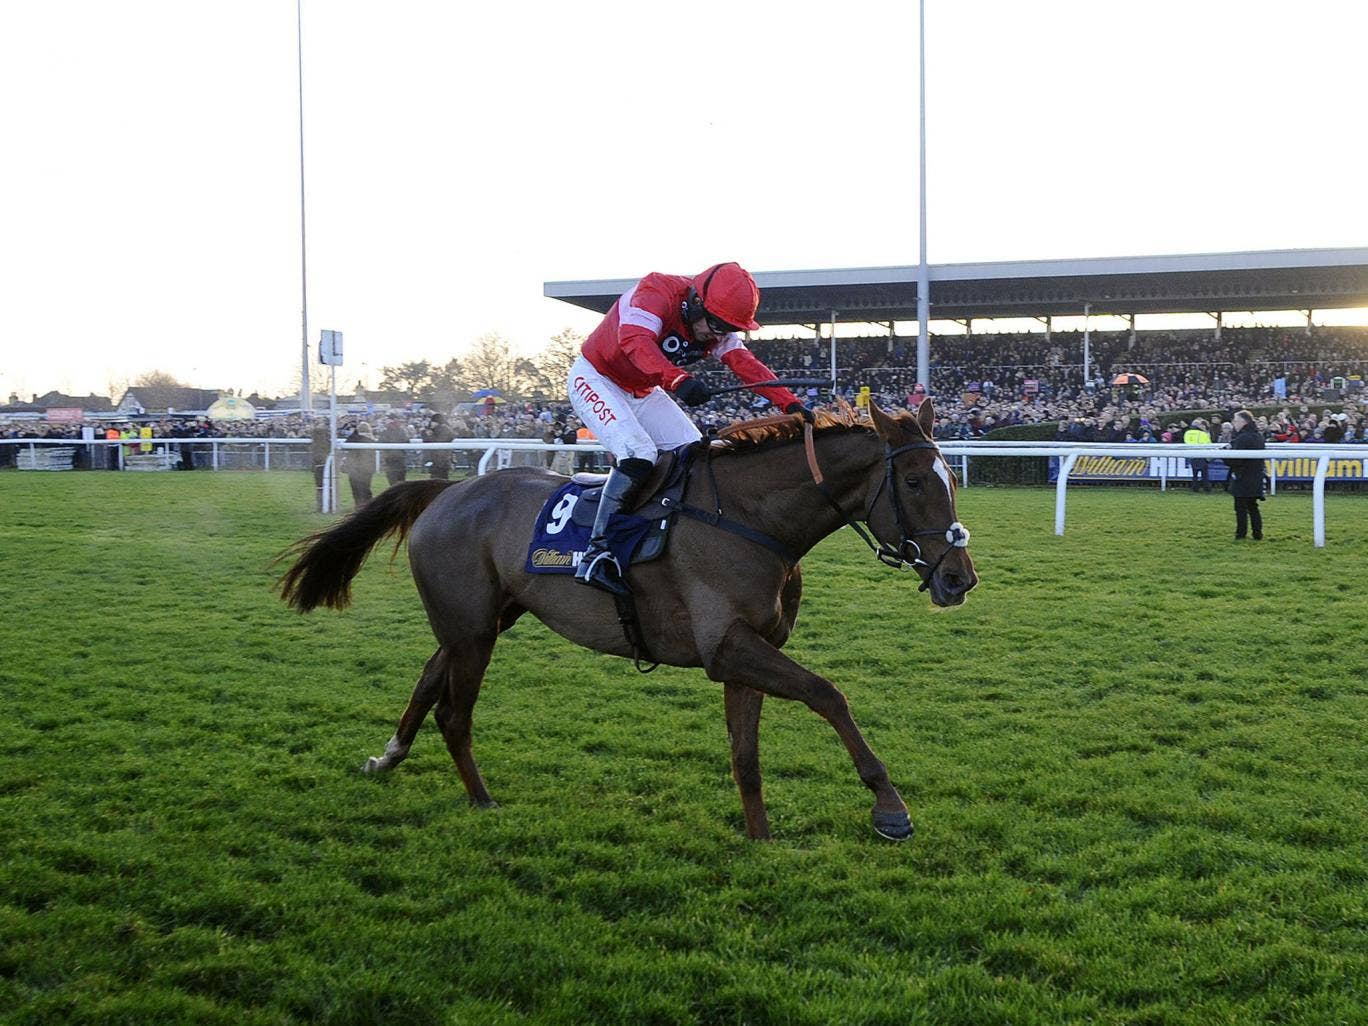 Silviniaco Conti, ridden by Noel Fehily, wins the King George VI Chase at Kempton